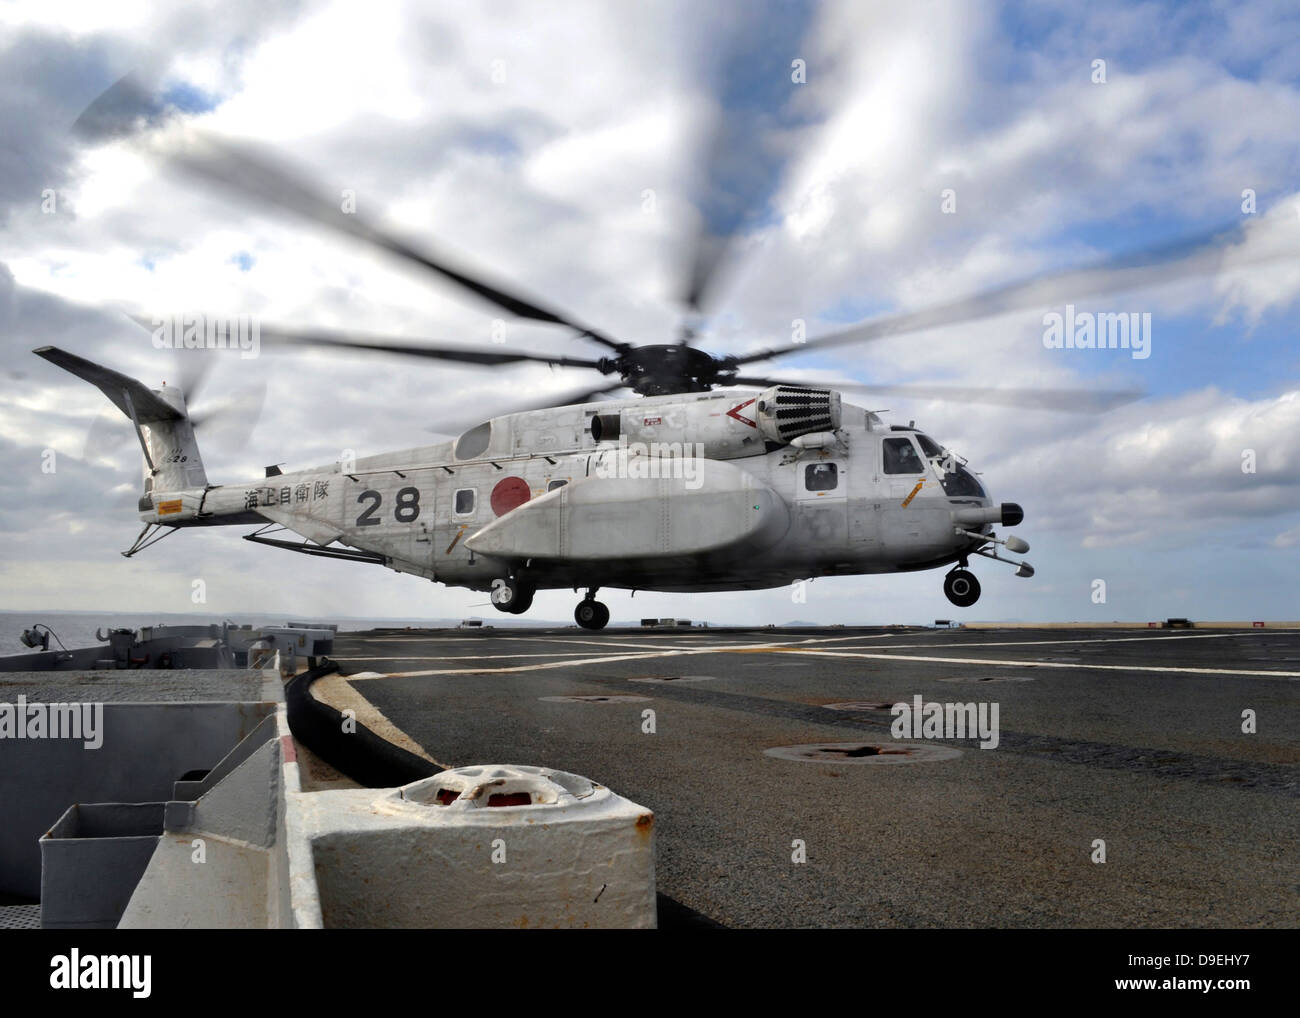 A Japanese Maritime Self-Defense Force MH-53 Sea Stallion lands on the flight deck of USS Denver. - Stock Image